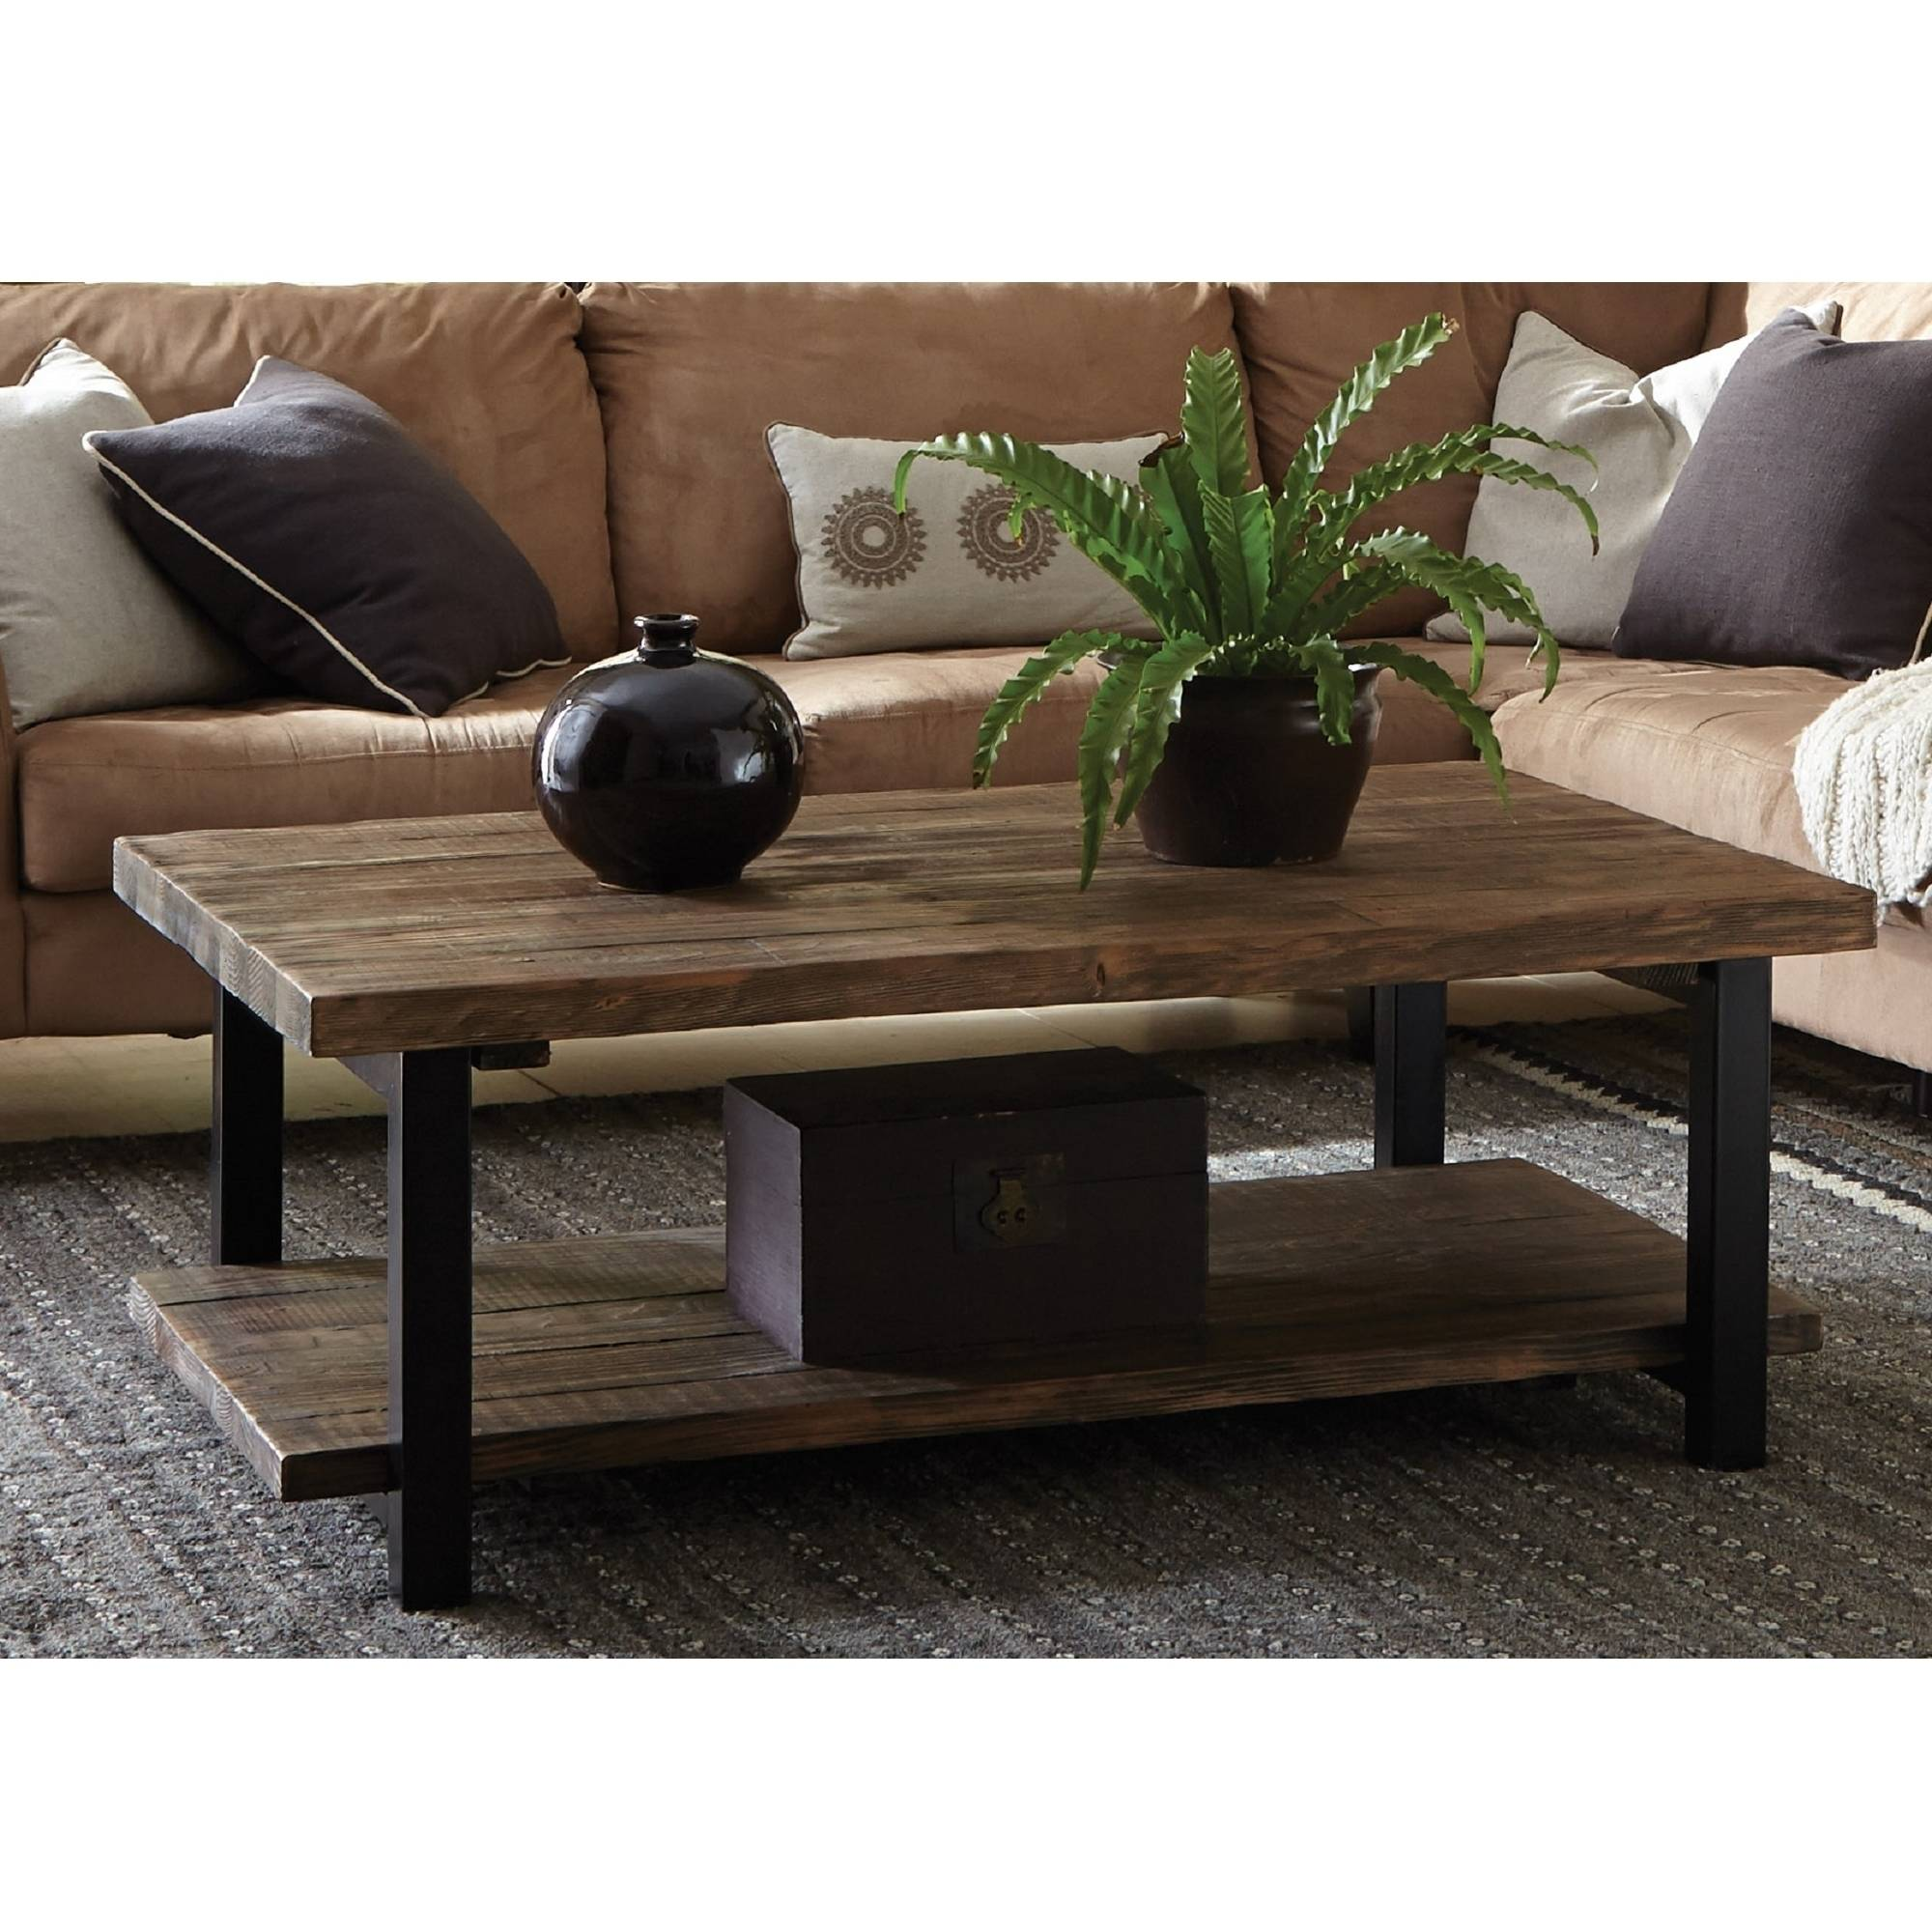 . Pomona Large Coffee Table  Rustic Natural   Walmart com